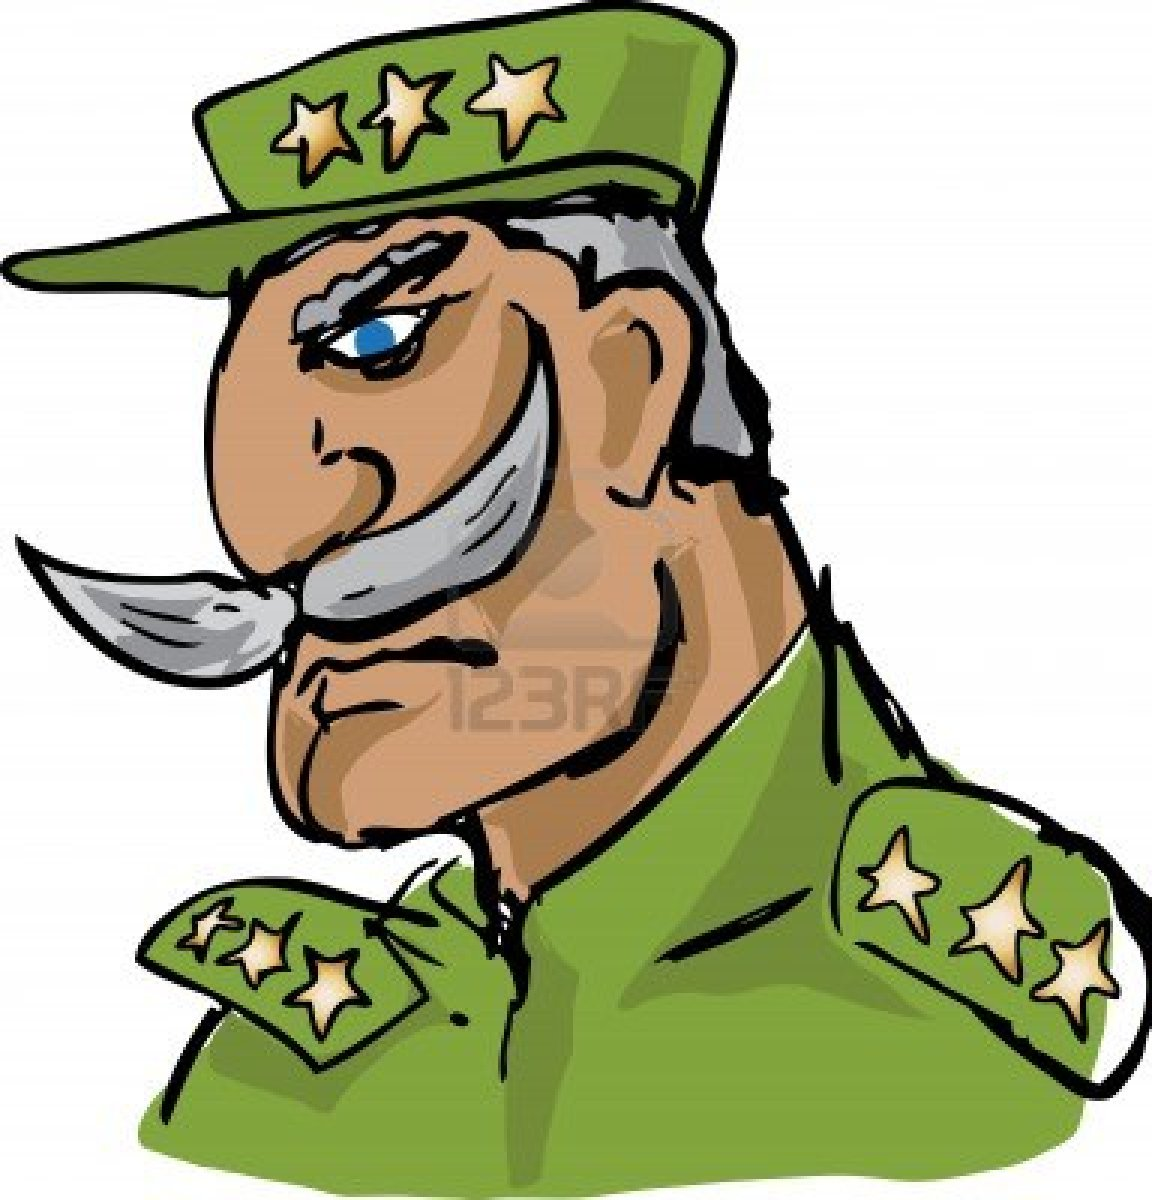 Küchendesign Fontaine Metzer Straße Saarlouis Military Officer Cartoon Name